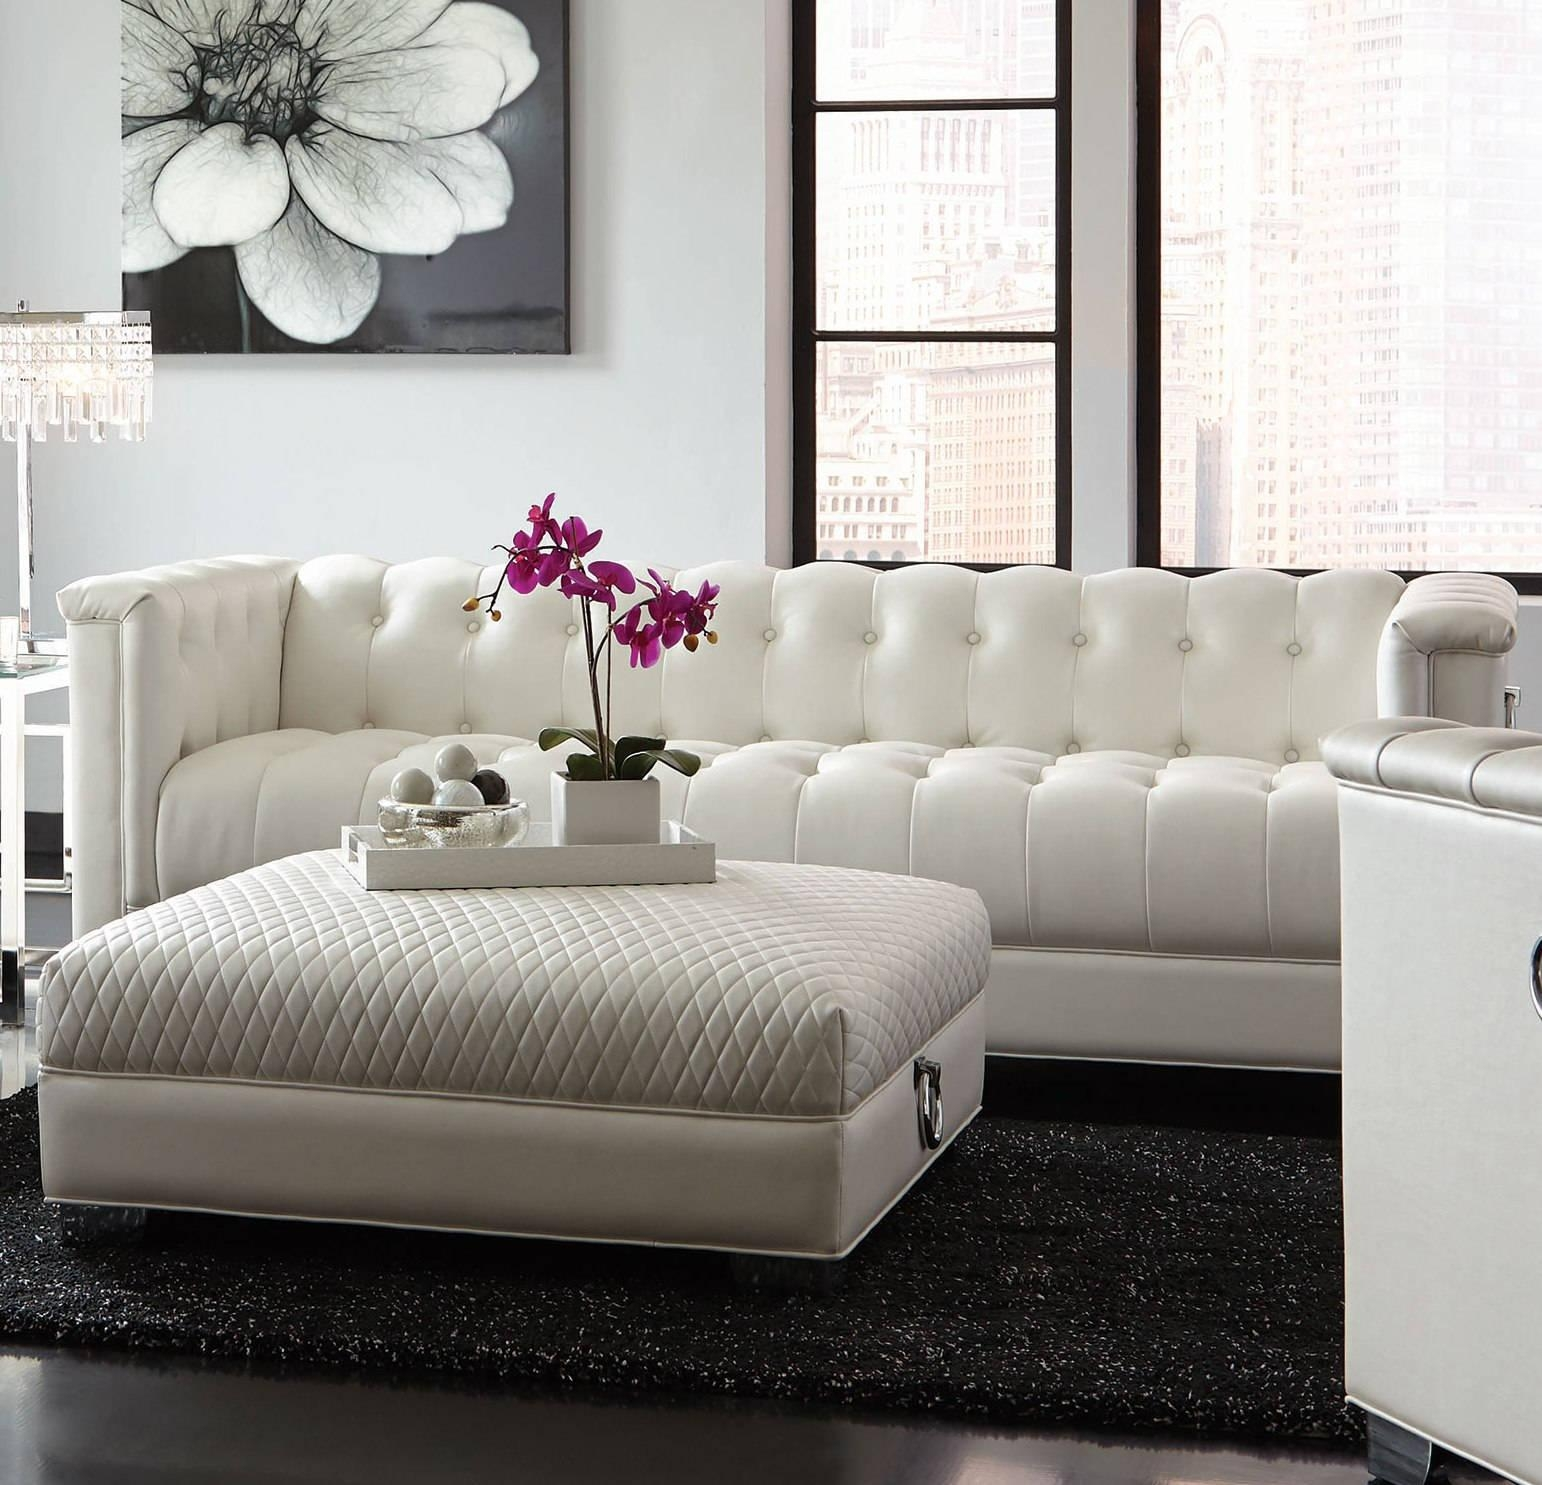 Chaviano Contemporary White Silver Faux Leather Wood Tufted Sofa Throughout Silver Tufted Sofas (Image 5 of 20)